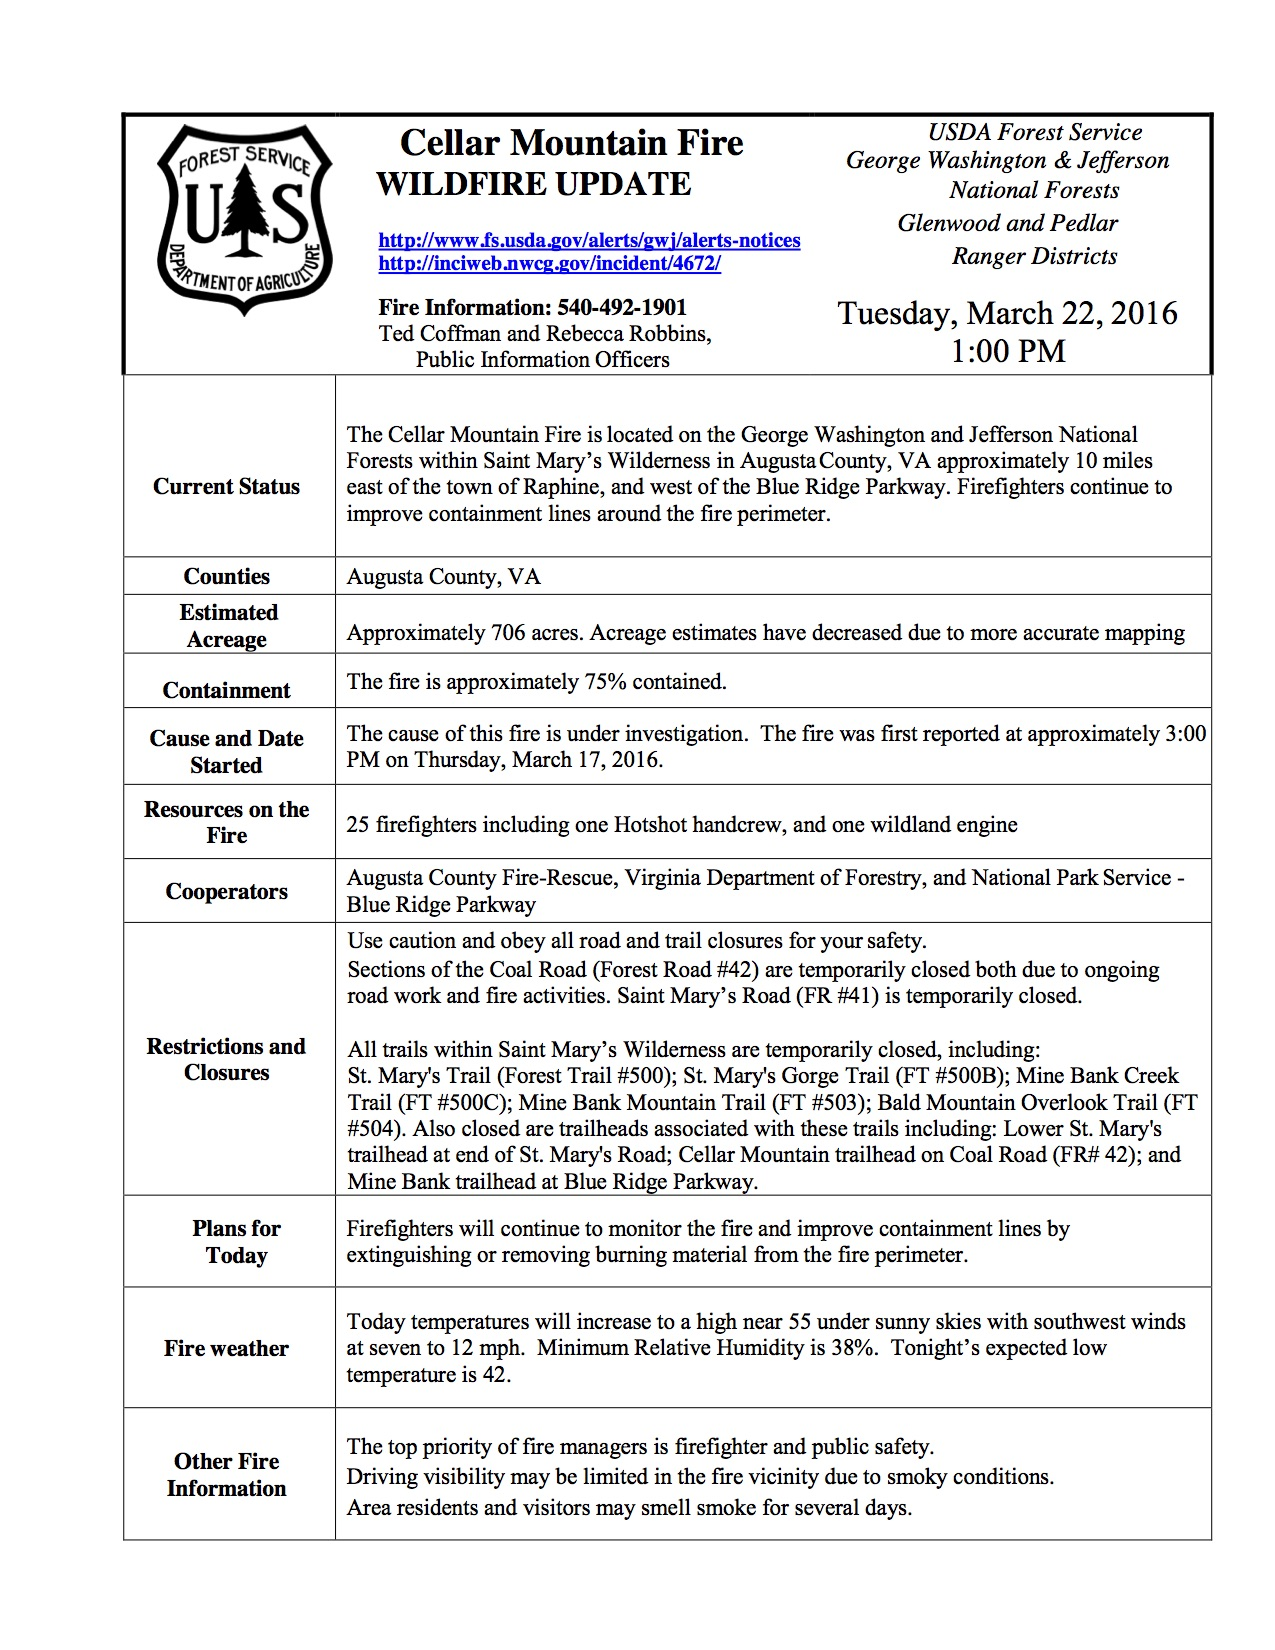 Augusta Fire Burning Over 800 Acres In GW National Forest 75 - Us Forest Service Fire Maps For Virginia